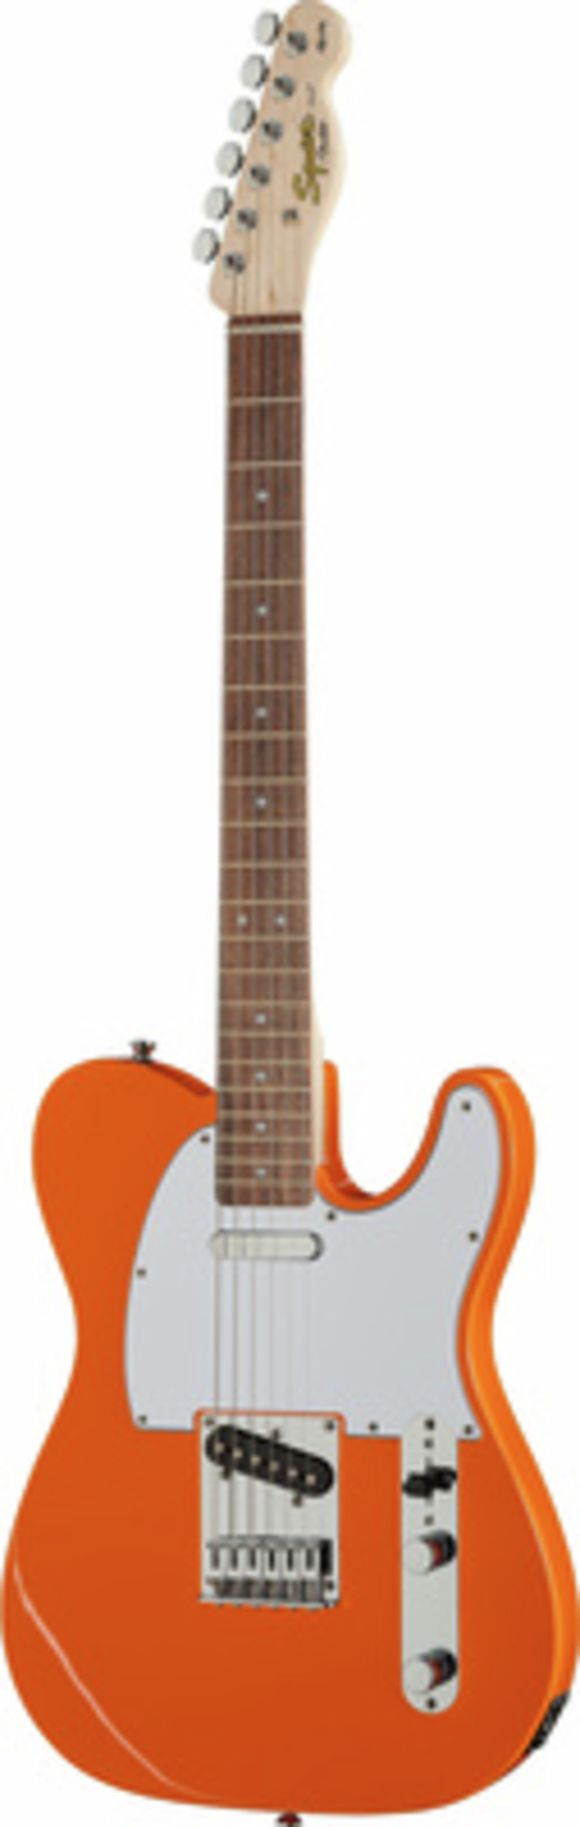 Squier Affinity Tele Orange IL Fender